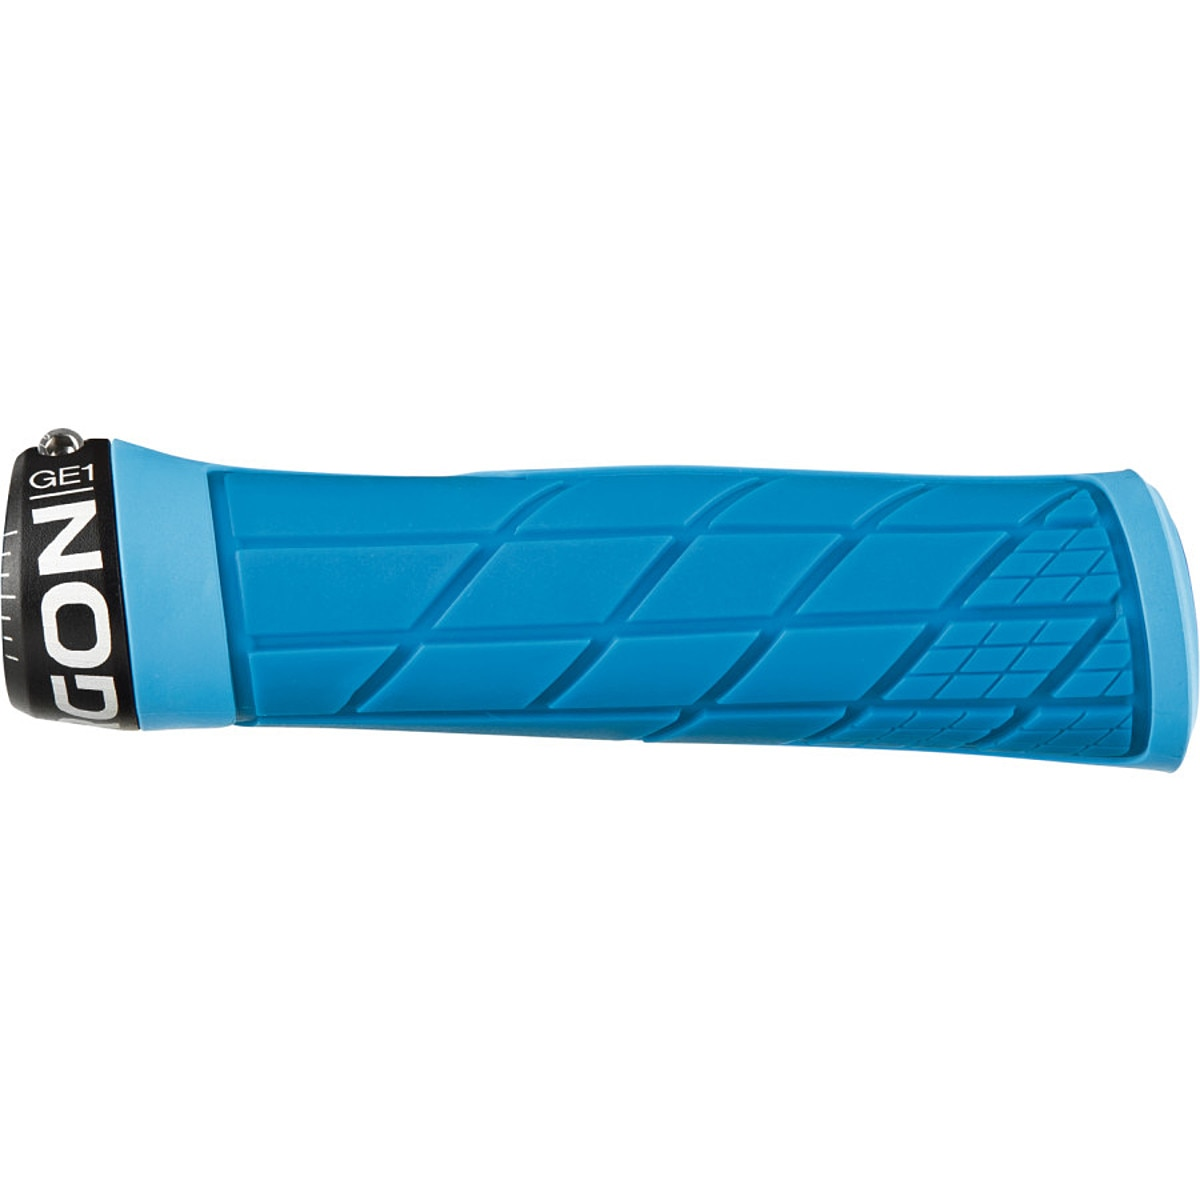 Ergon GE1 Grips Blue One Size